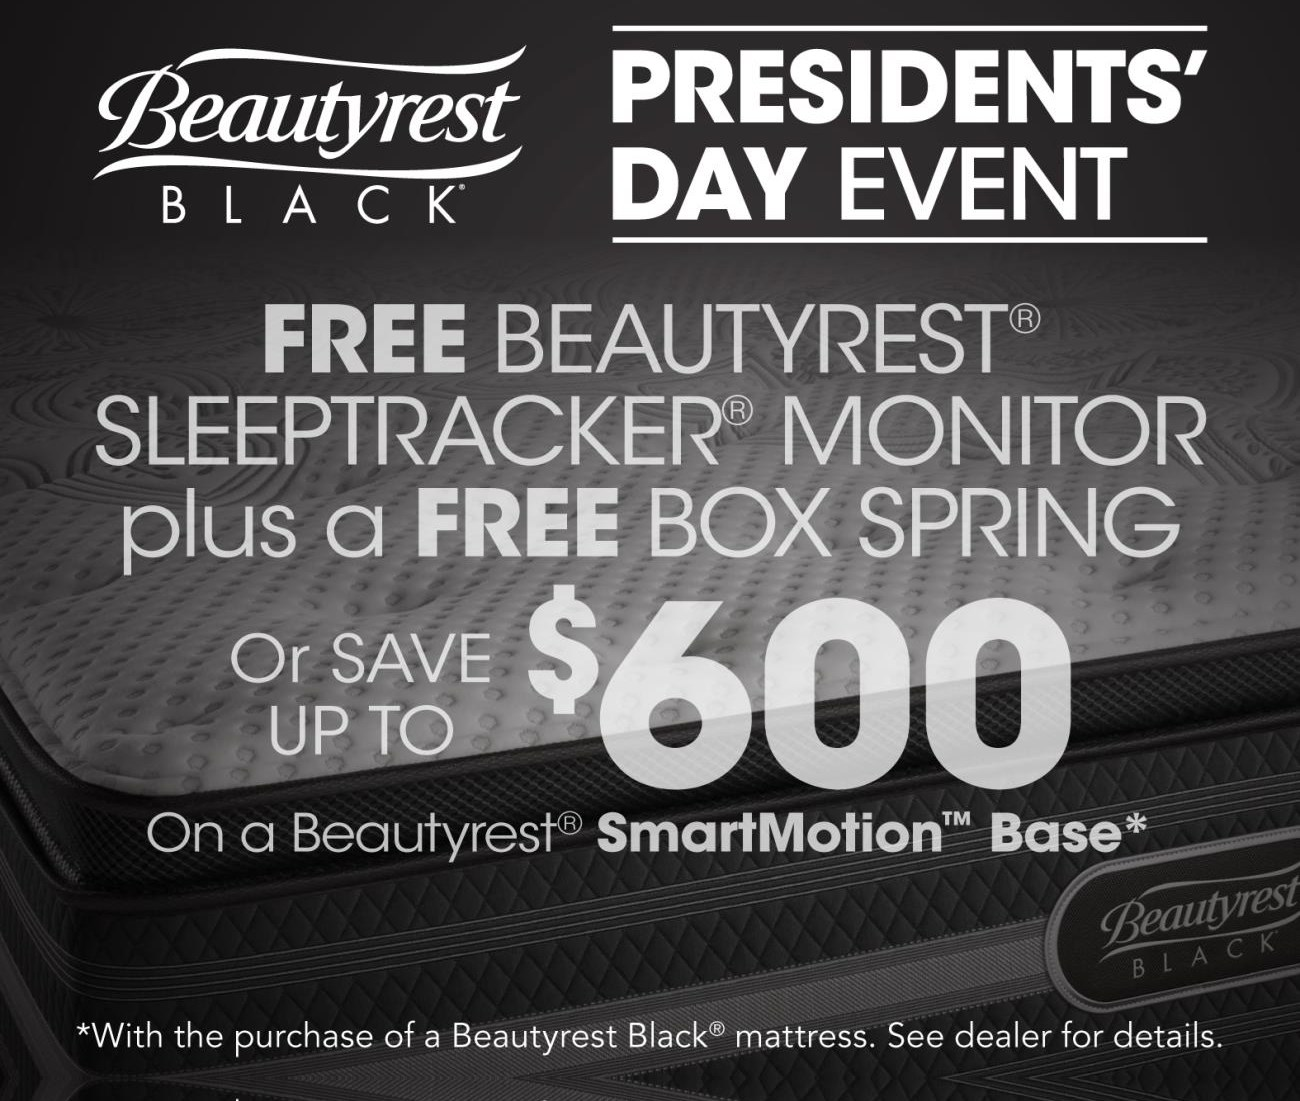 Beautyrest Black Free Boxspring or Save up to $400!